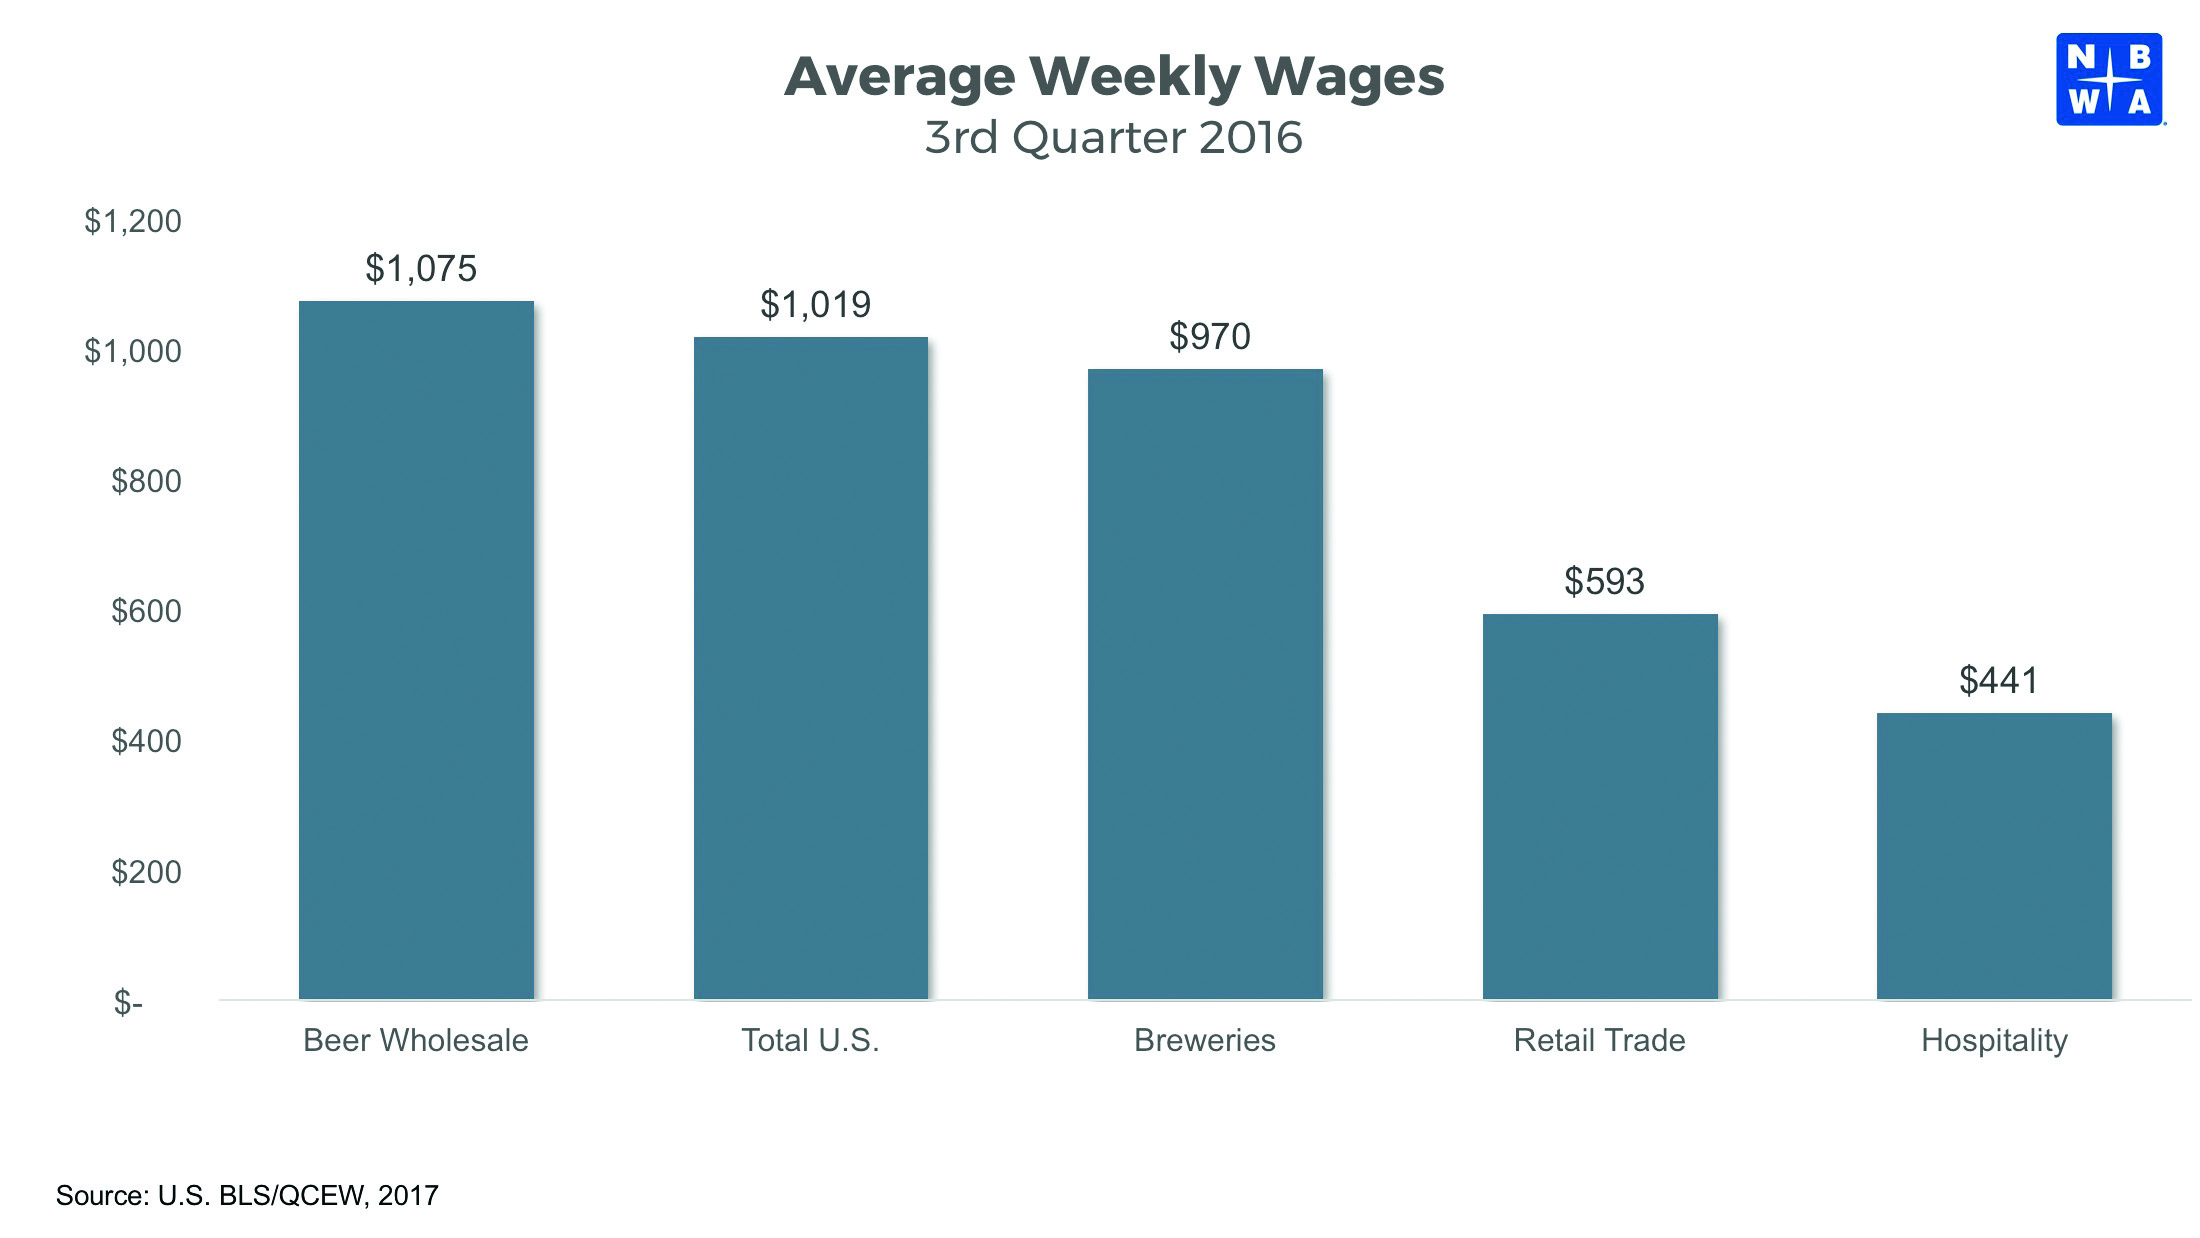 Average Weekly Wages 2016